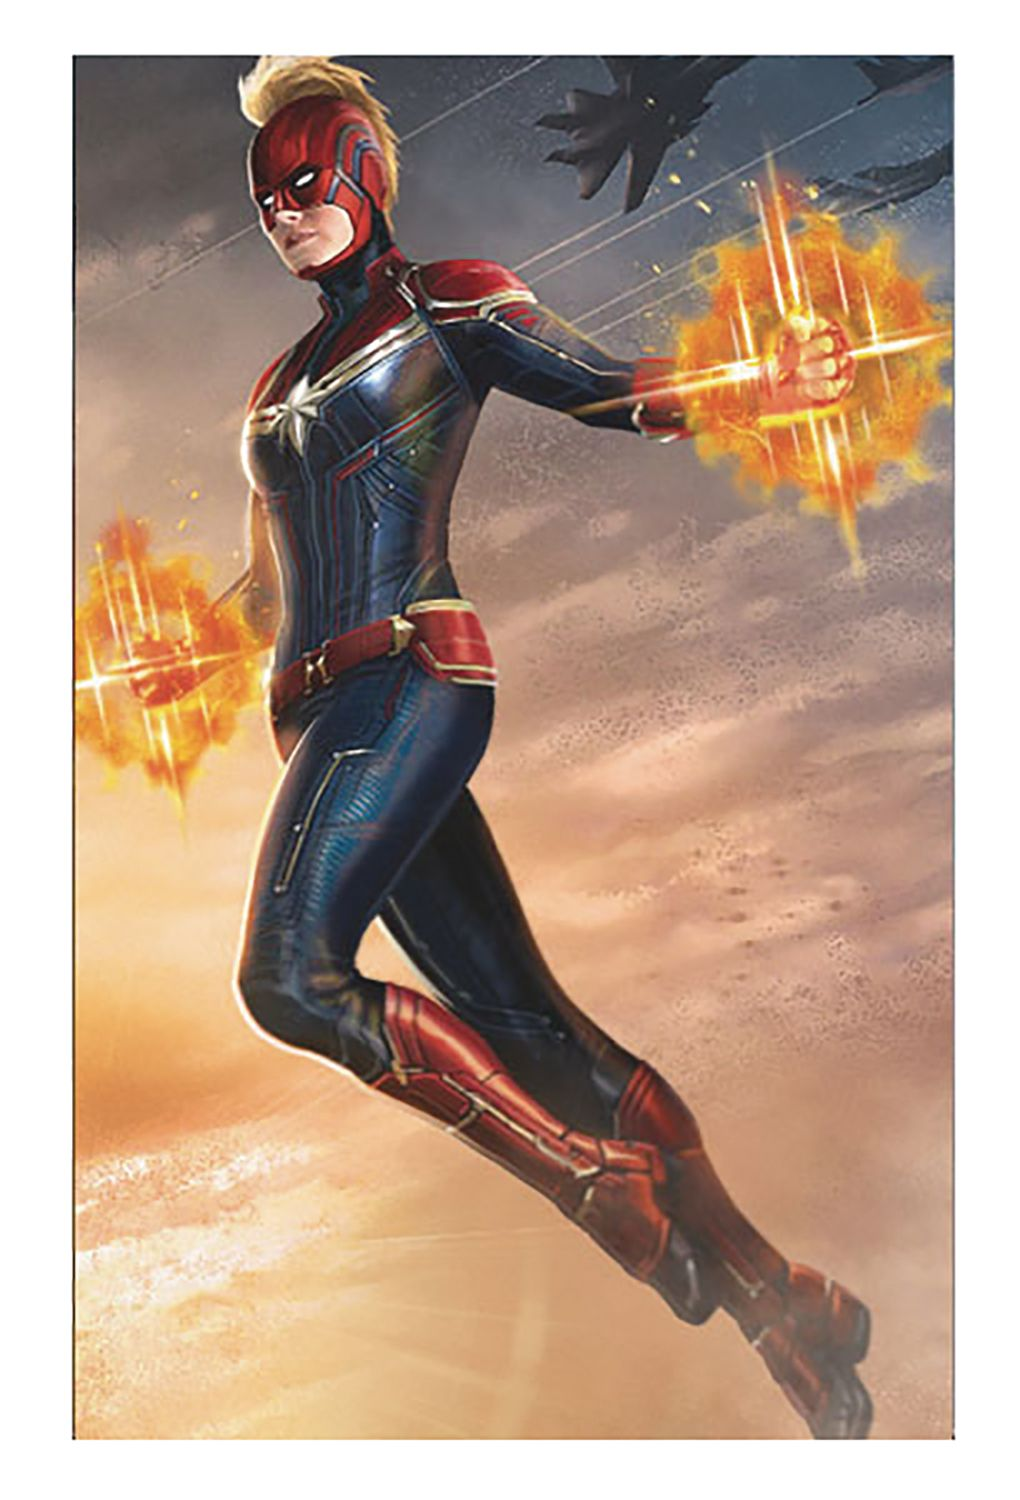 New Captain Marvel Art Shows Full Costume Rad And Blue With Helmet Hul Hel Captain Marvel Marvel Superheroes Captain Marvel Carol Danvers Measure shoulder point to wrist through your elbow. pinterest